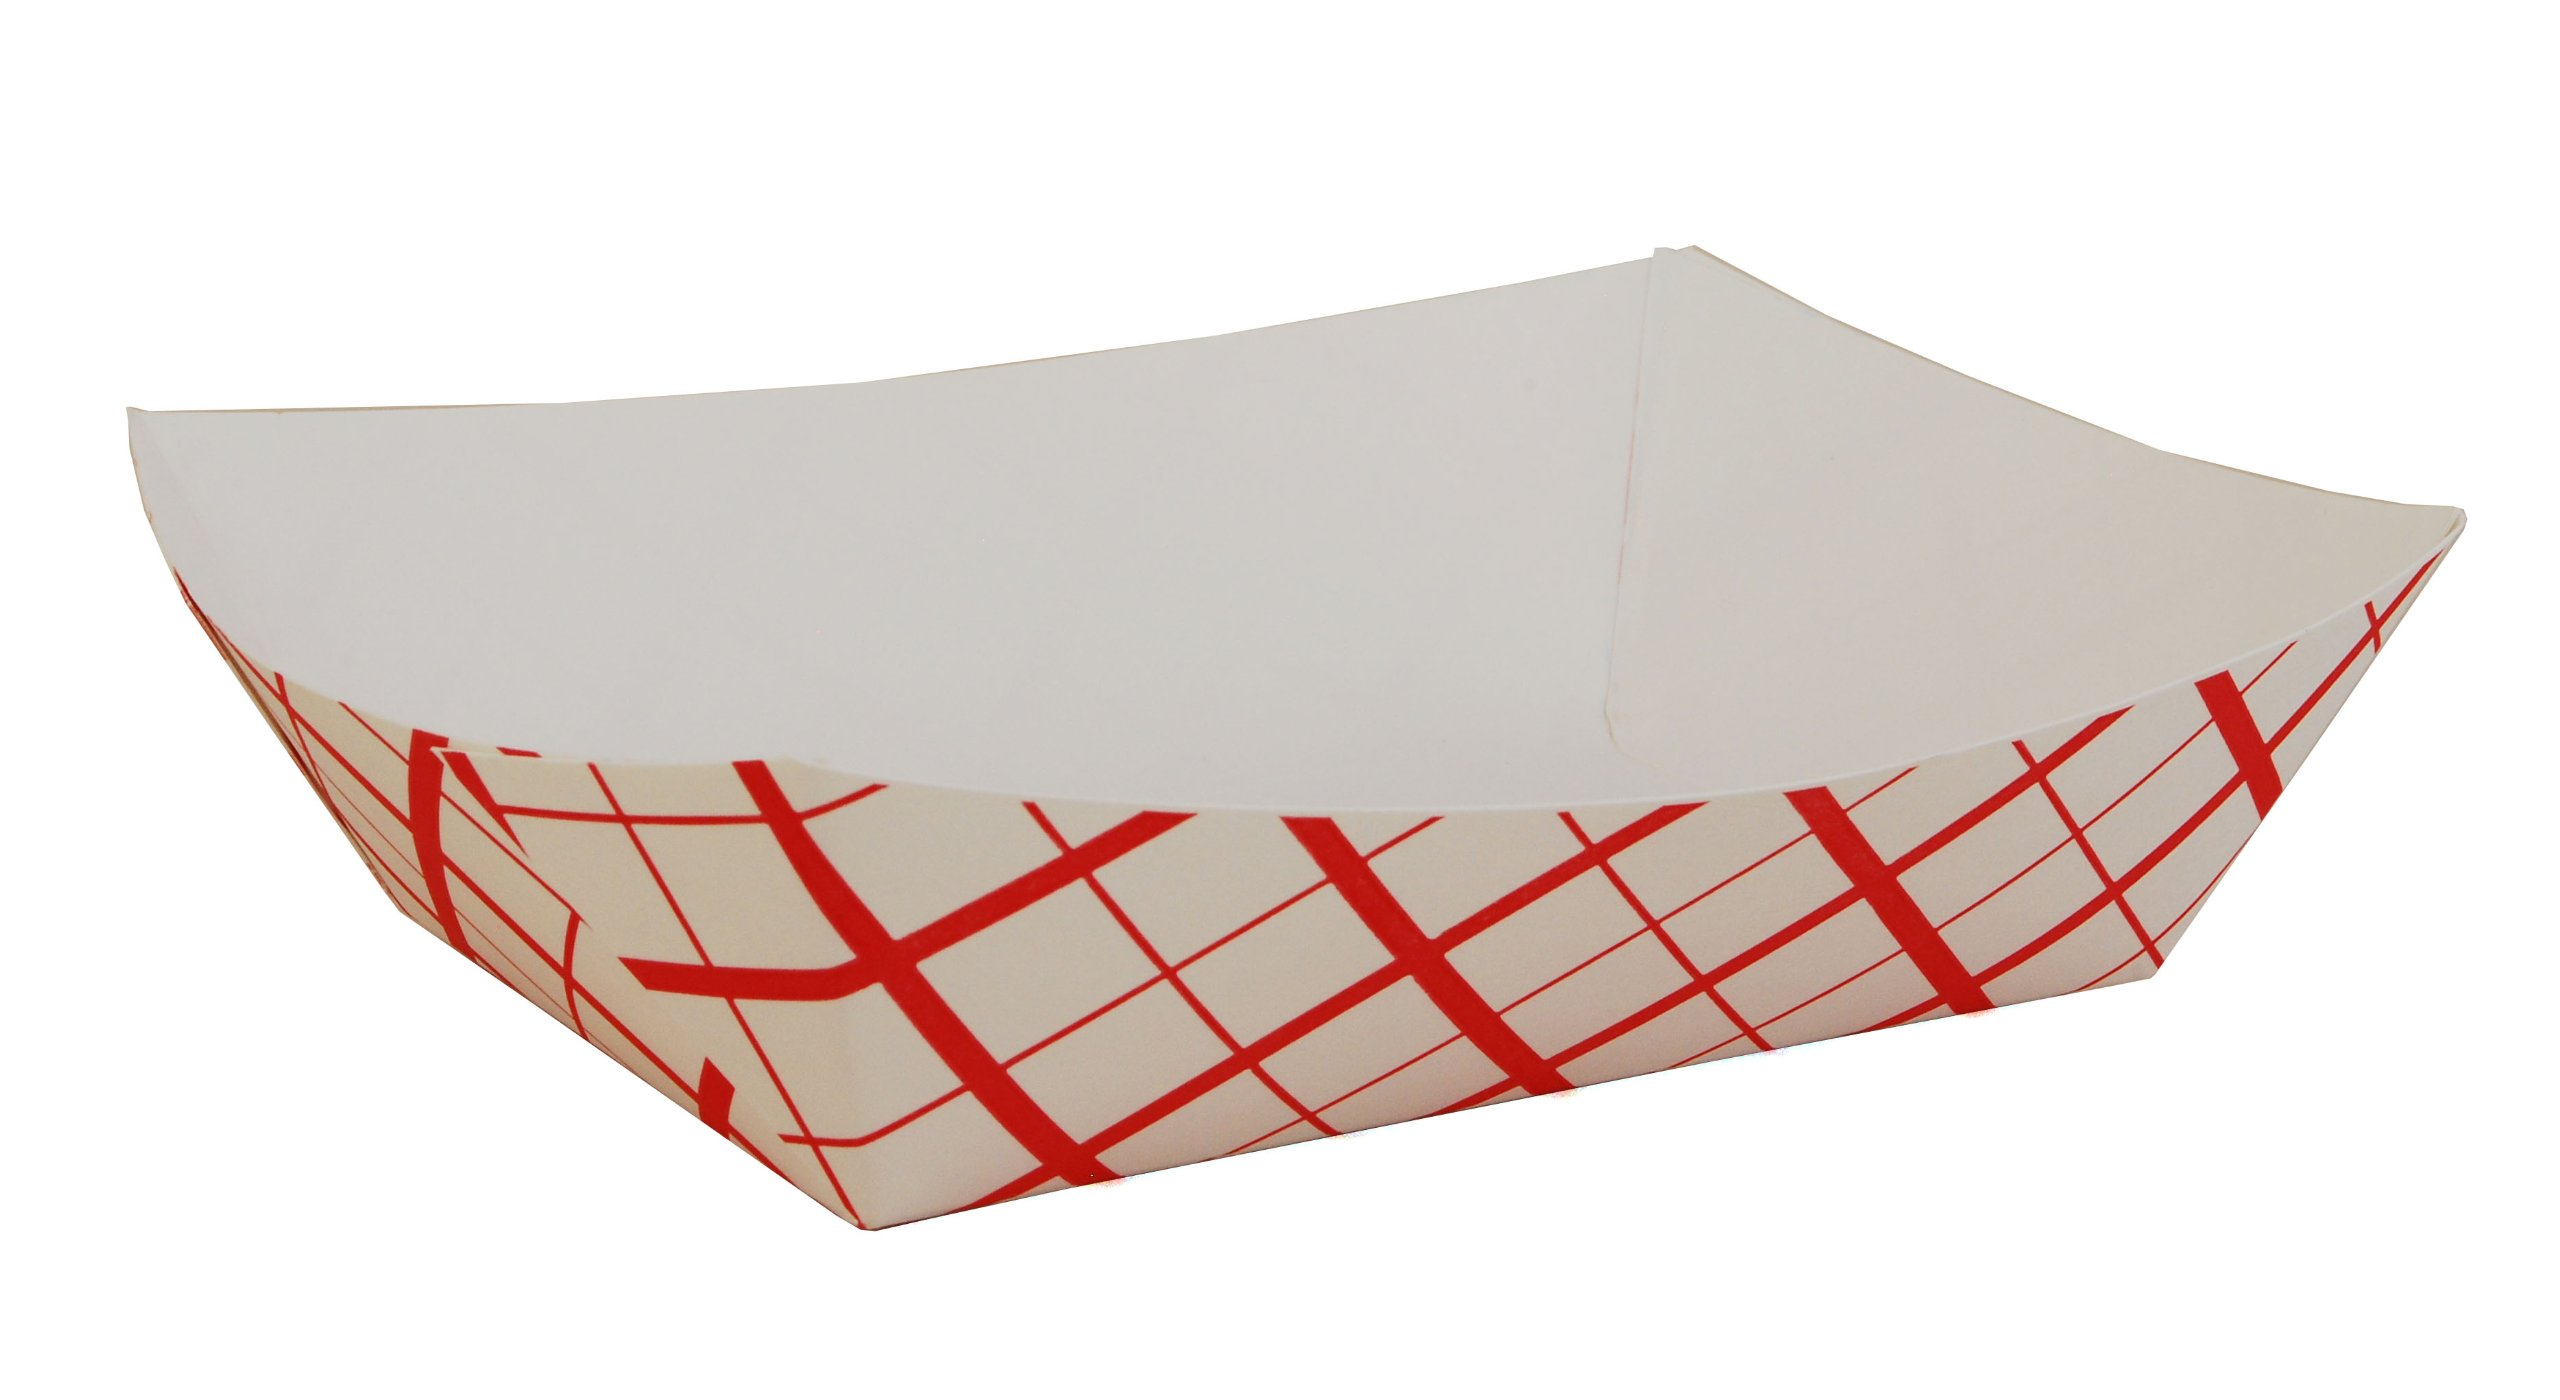 Southern Champion Tray 0429 #500 Southland Red Check Paperboard Food Tray / Boat / Bowl, 5 lb Capacity (Case of 500) by Southern Champion Tray (Image #1)